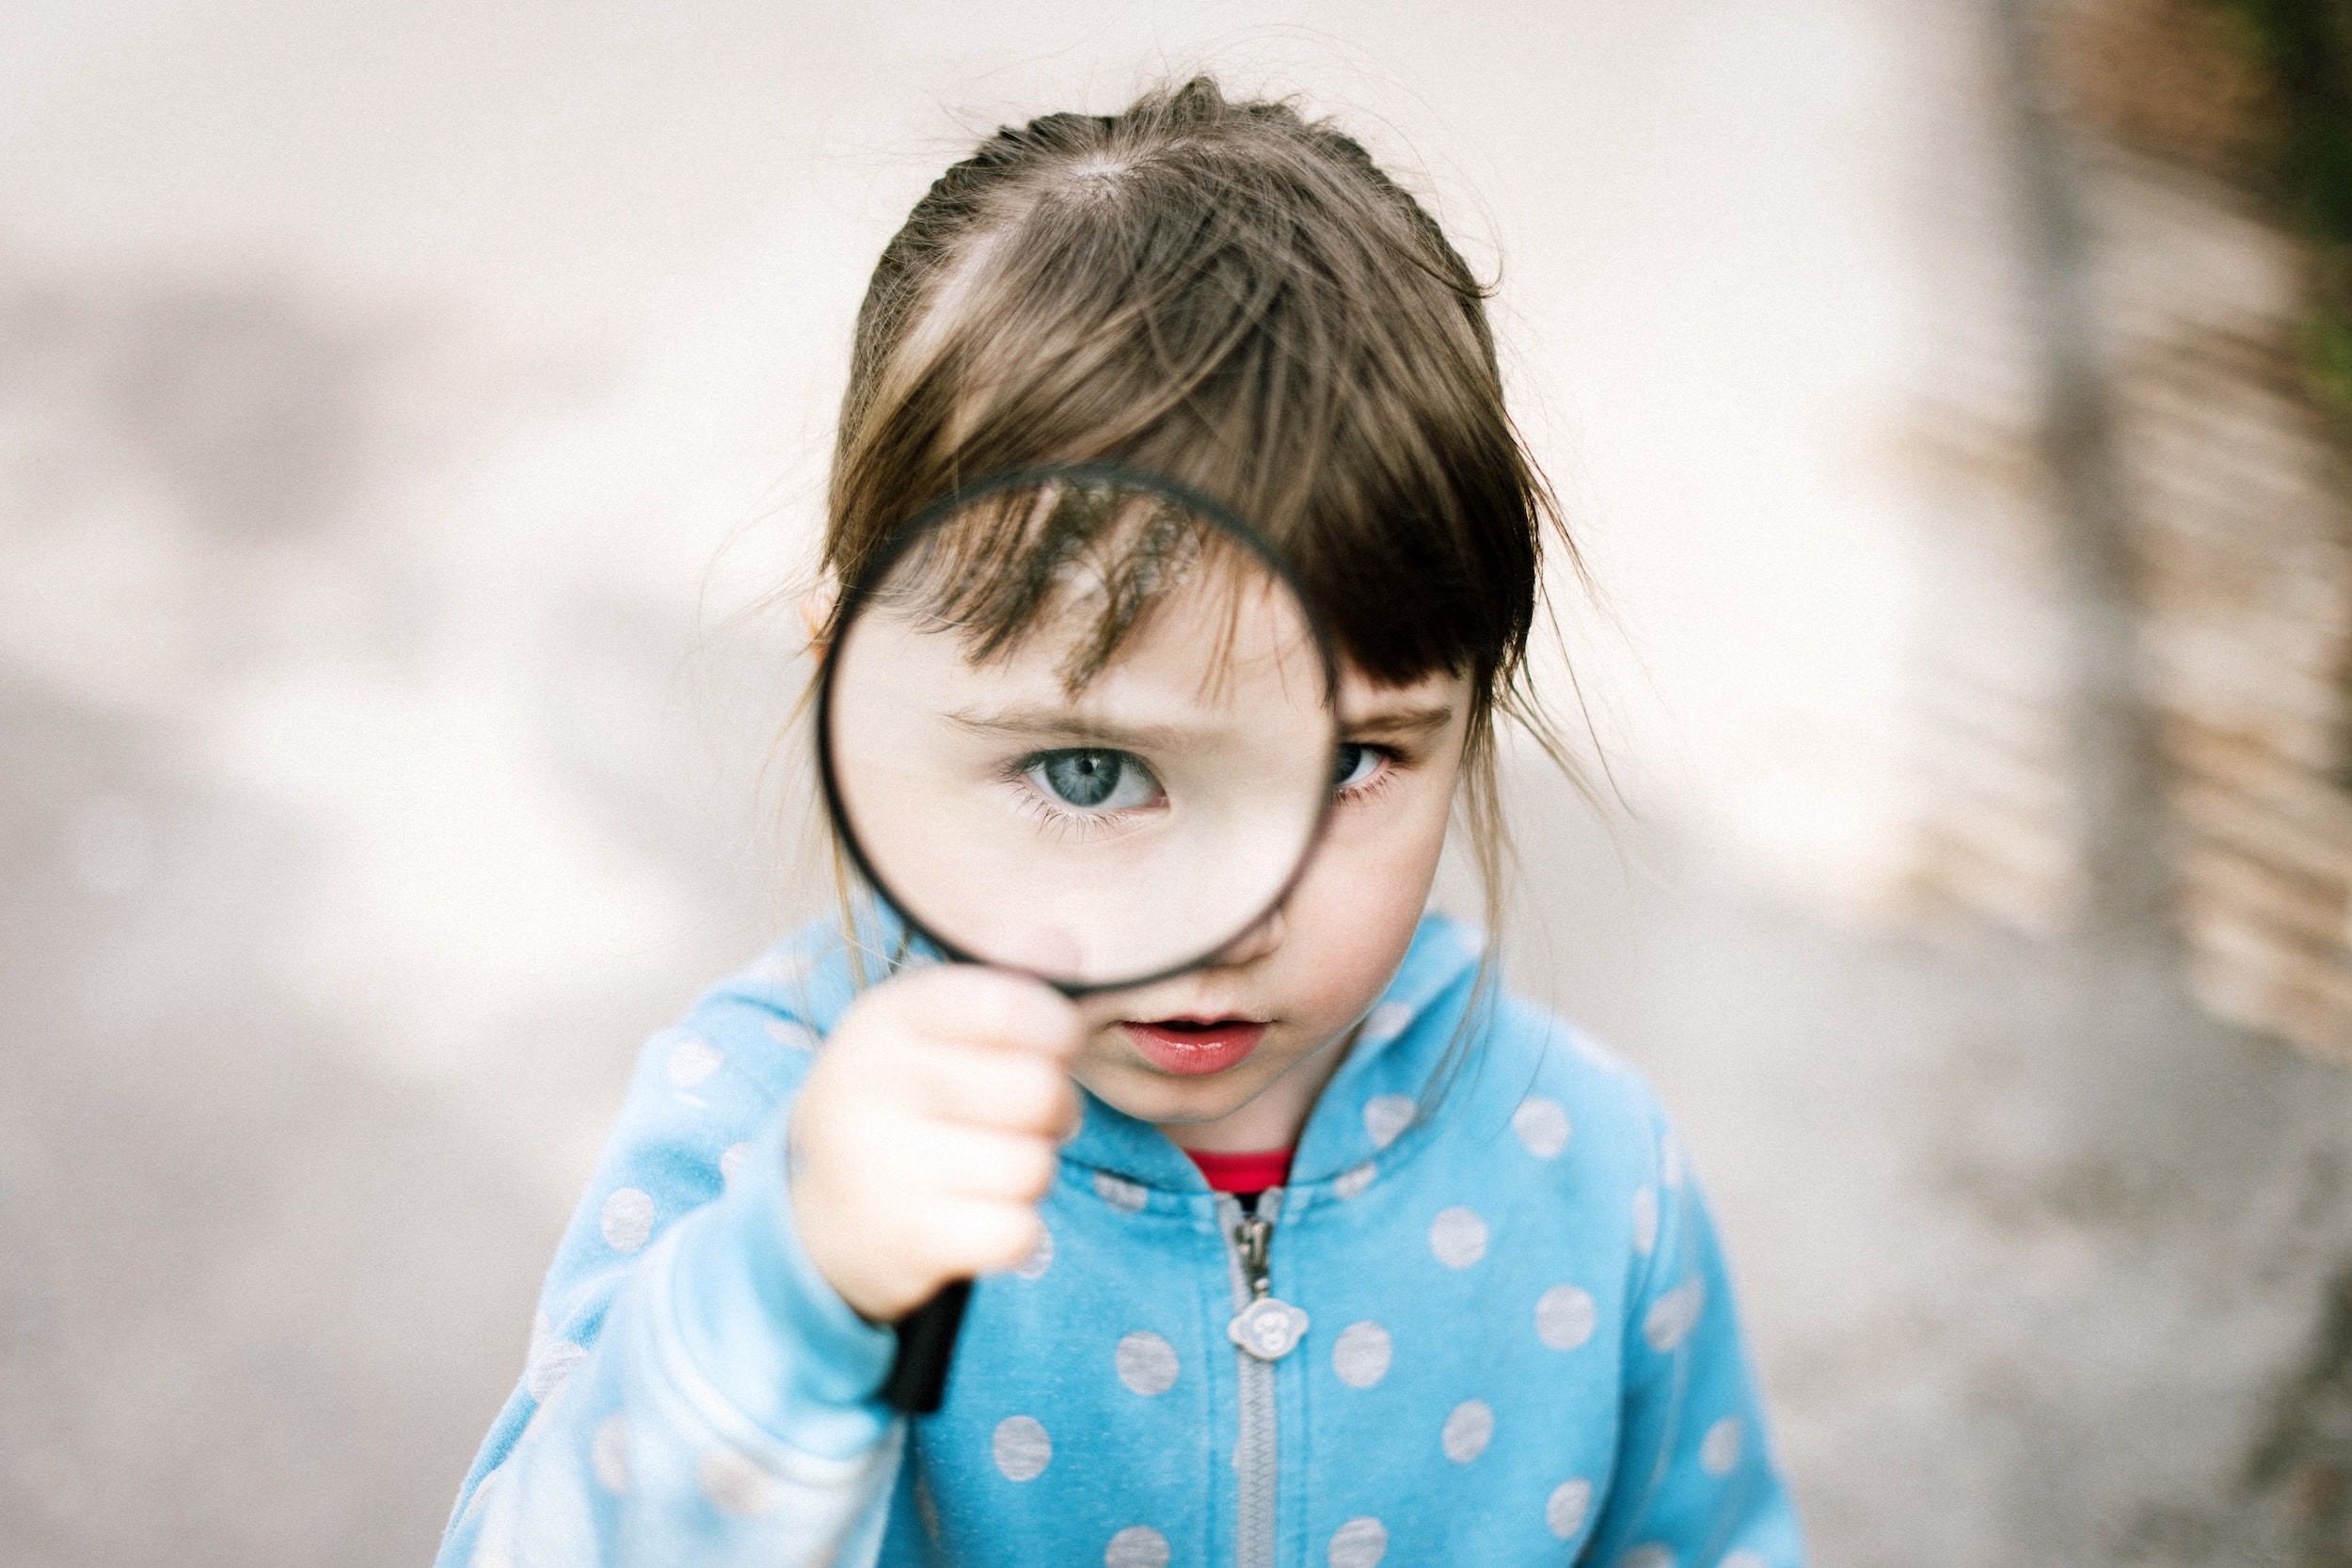 Young girl with magnifying glass making her eye look very large.